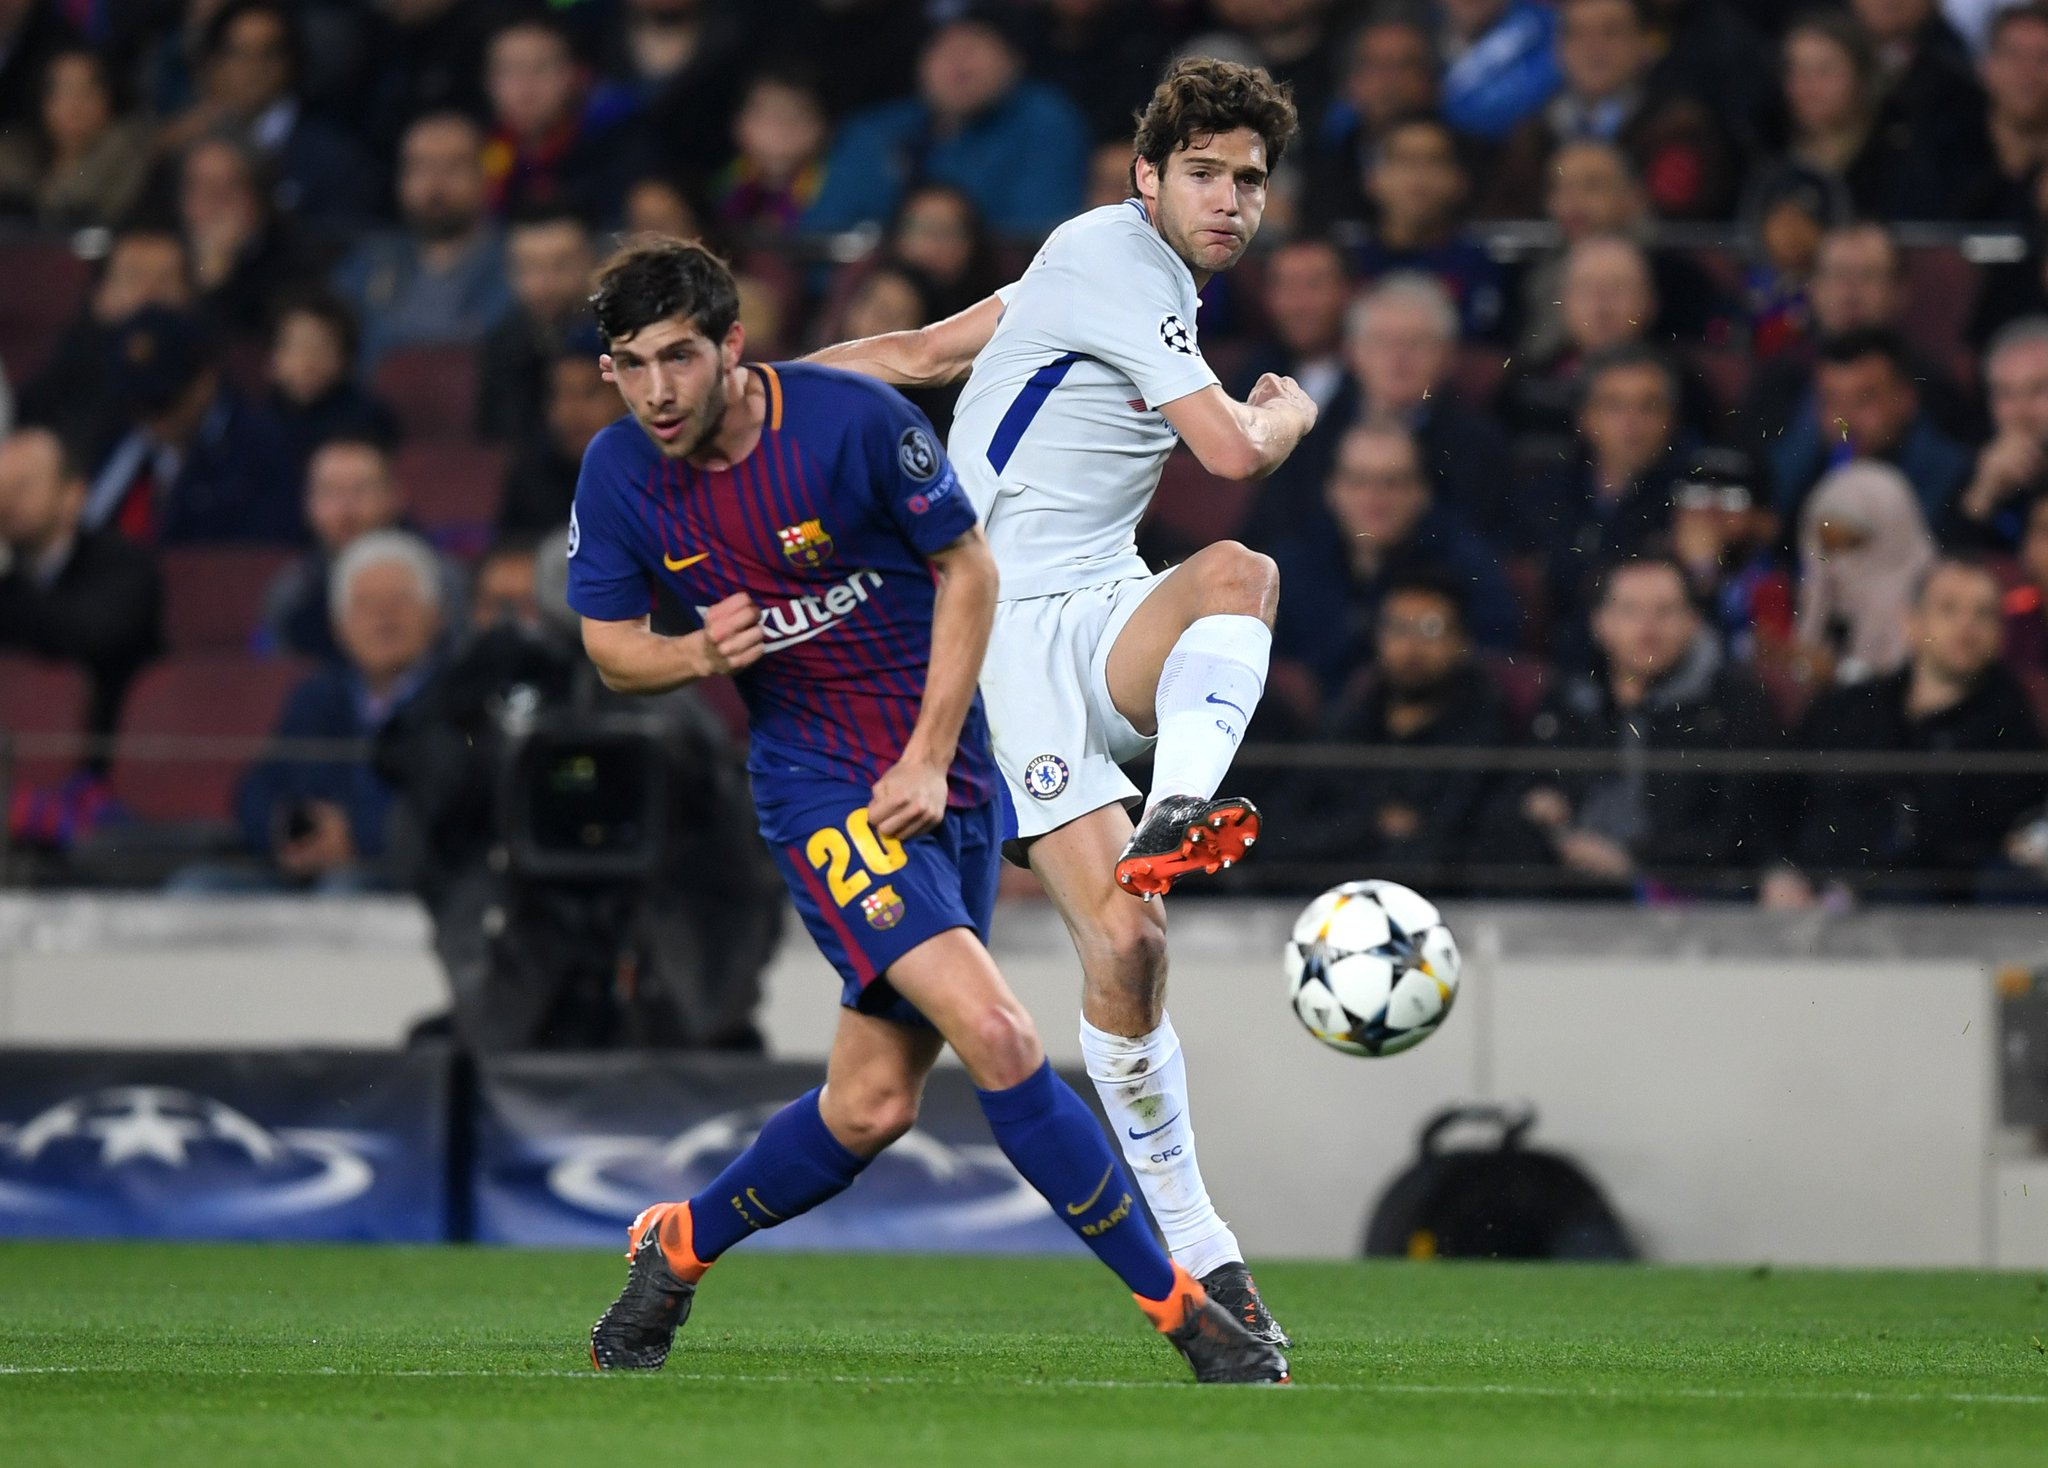 The Blues continue to press...  30 minutes remaining at the Camp Nou. #BARCHE https://t.co/yfcSLKoPtg